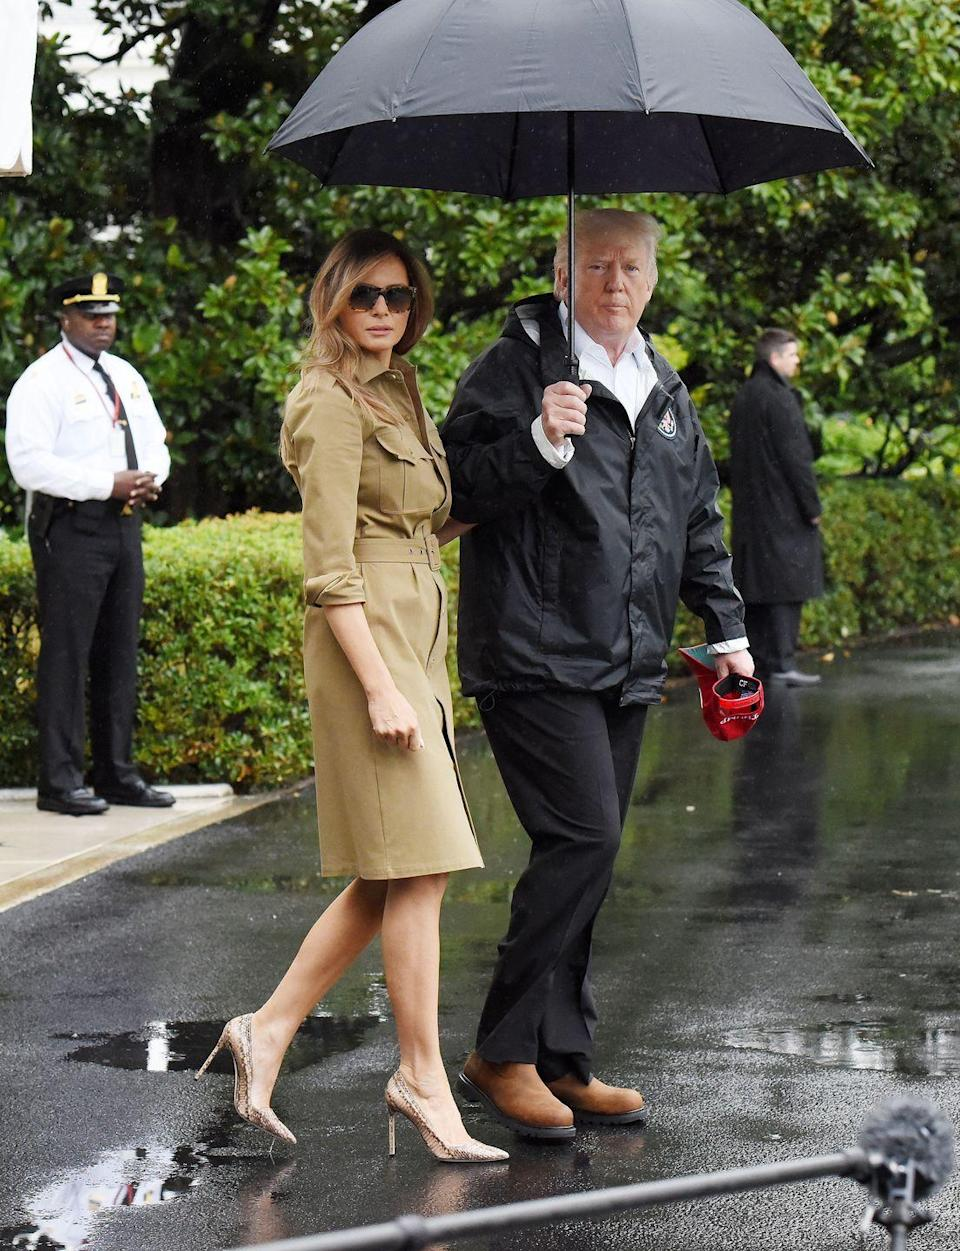 "<p>""<a href=""https://www.youtube.com/watch?v=Ybq8lGO-e2M"" rel=""nofollow noopener"" target=""_blank"" data-ylk=""slk:Melania Trump, you are an outfit repeater!"" class=""link rapid-noclick-resp"">Melania Trump, you are an outfit repeater!</a>"" Remember the Ralph Lauren shirtdress Trump wore in Saudi Arabia? The first lady received some backlash (<a href=""https://www.vanityfair.com/style/2017/08/melania-trump-michael-kors-dress-outfit-repeating"" rel=""nofollow noopener"" target=""_blank"" data-ylk=""slk:on multiple occasions"" class=""link rapid-noclick-resp"">on multiple occasions</a>) for wearing the same outfit twice.</p>"